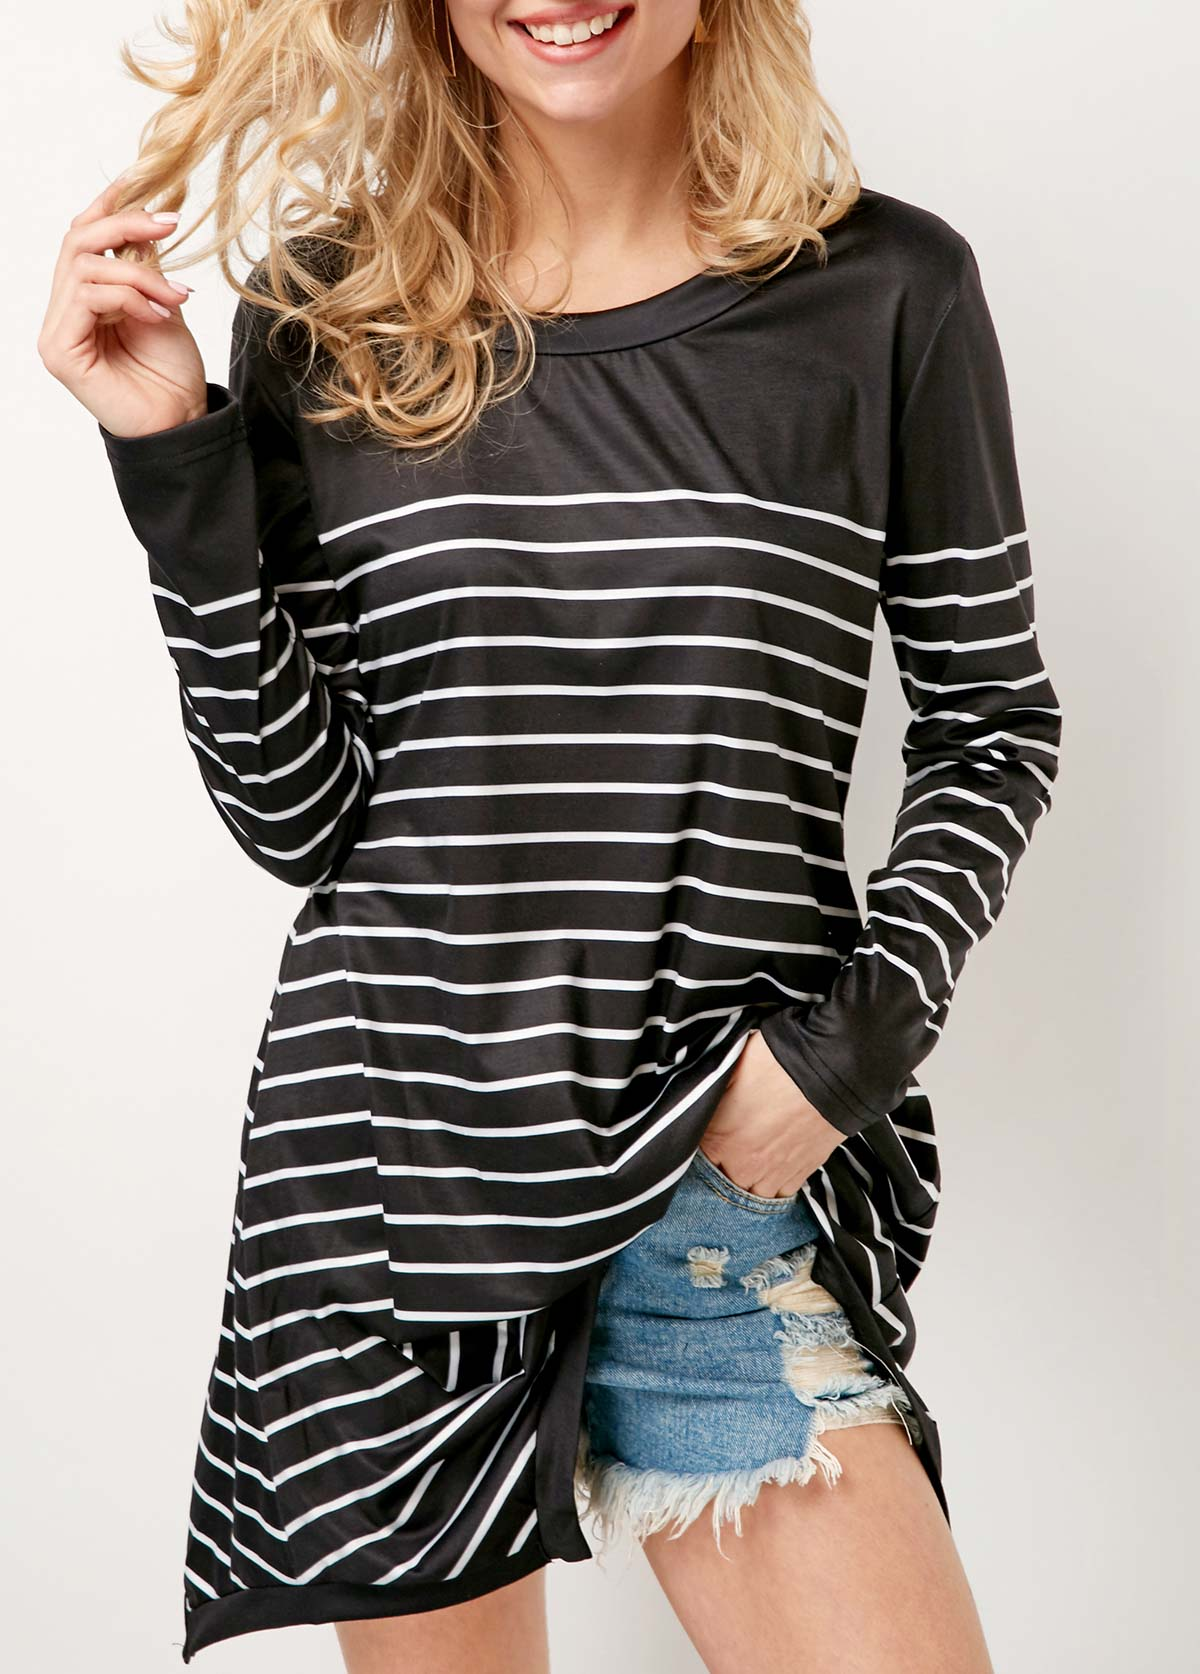 Long Sleeve Striped Round Neck Black T Shirt